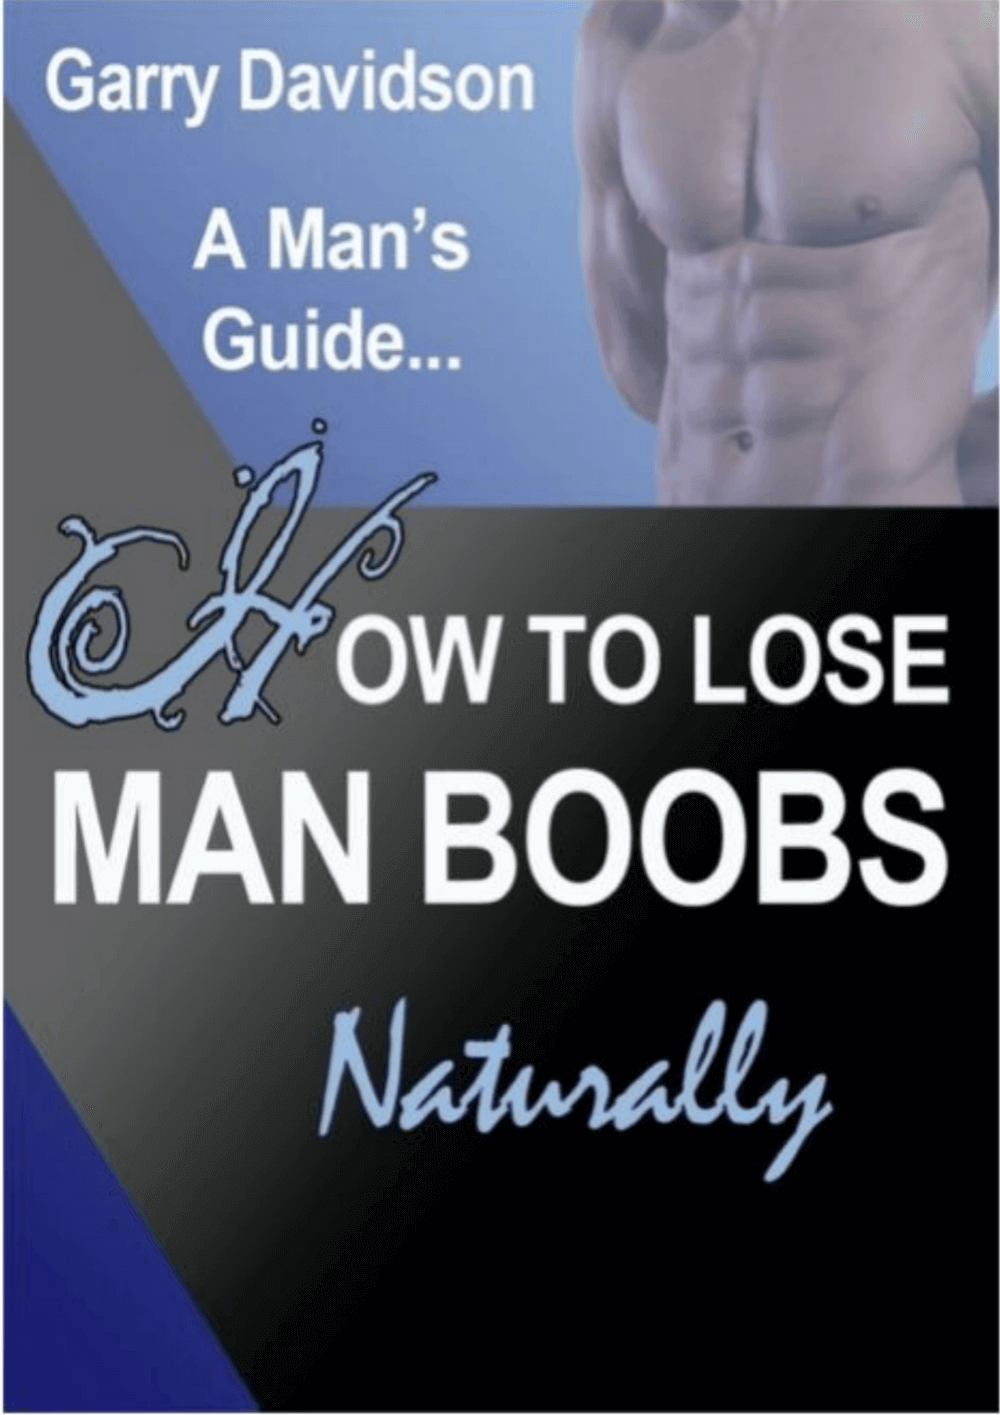 How To Lose Man Boobs Naturally Review - Worthy or Scam? Read Before You Buy!